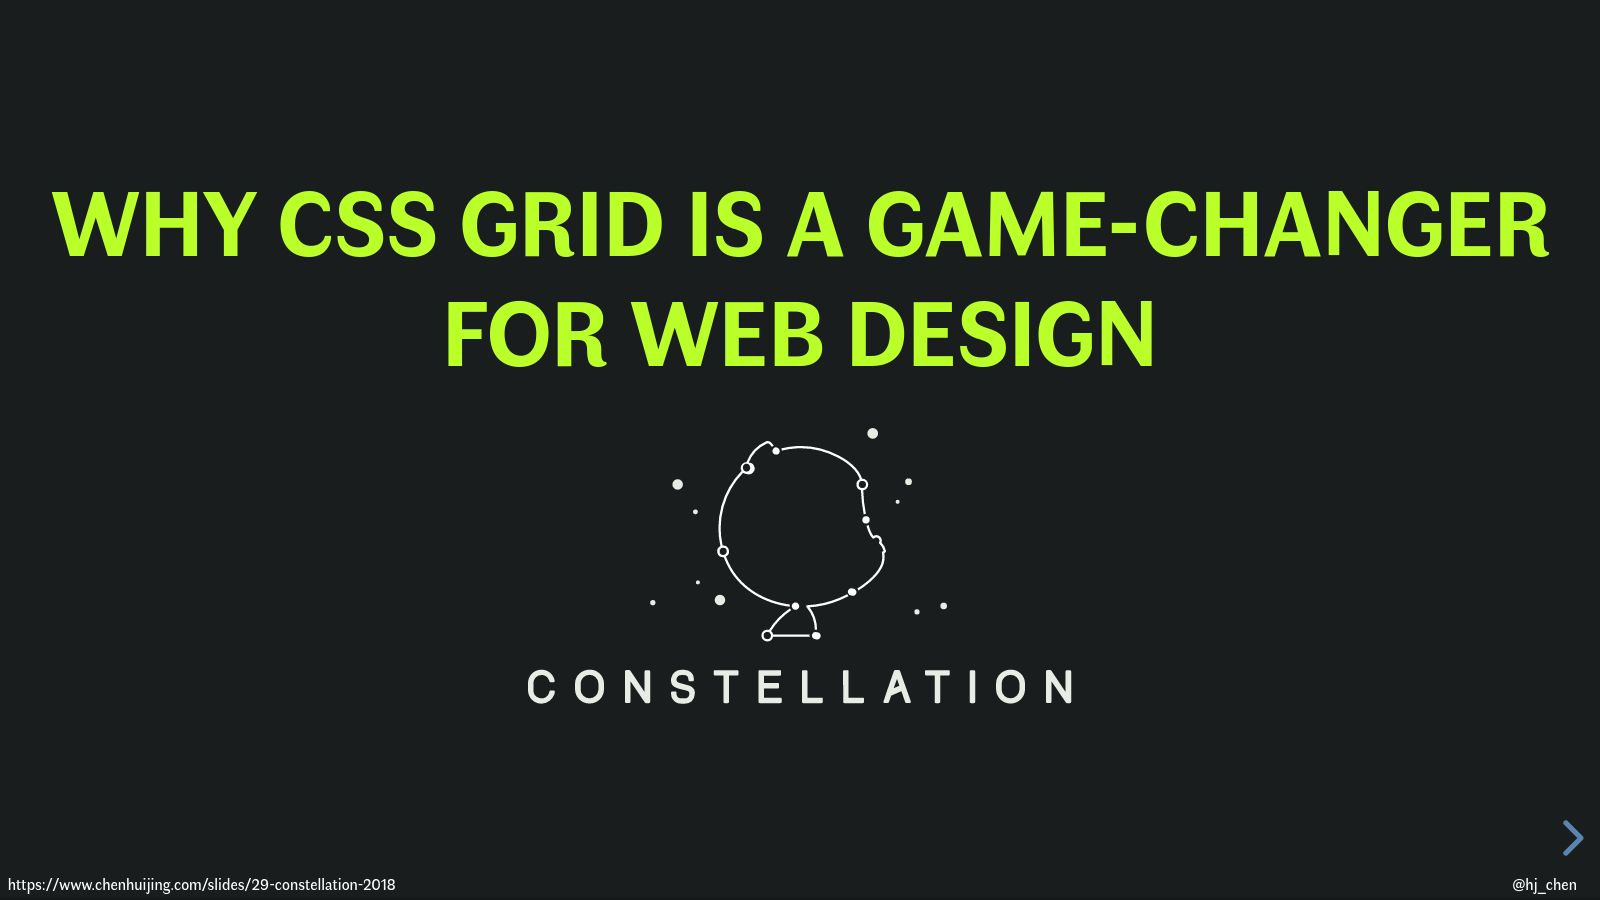 Why CSS Grid is a game-changer for web design